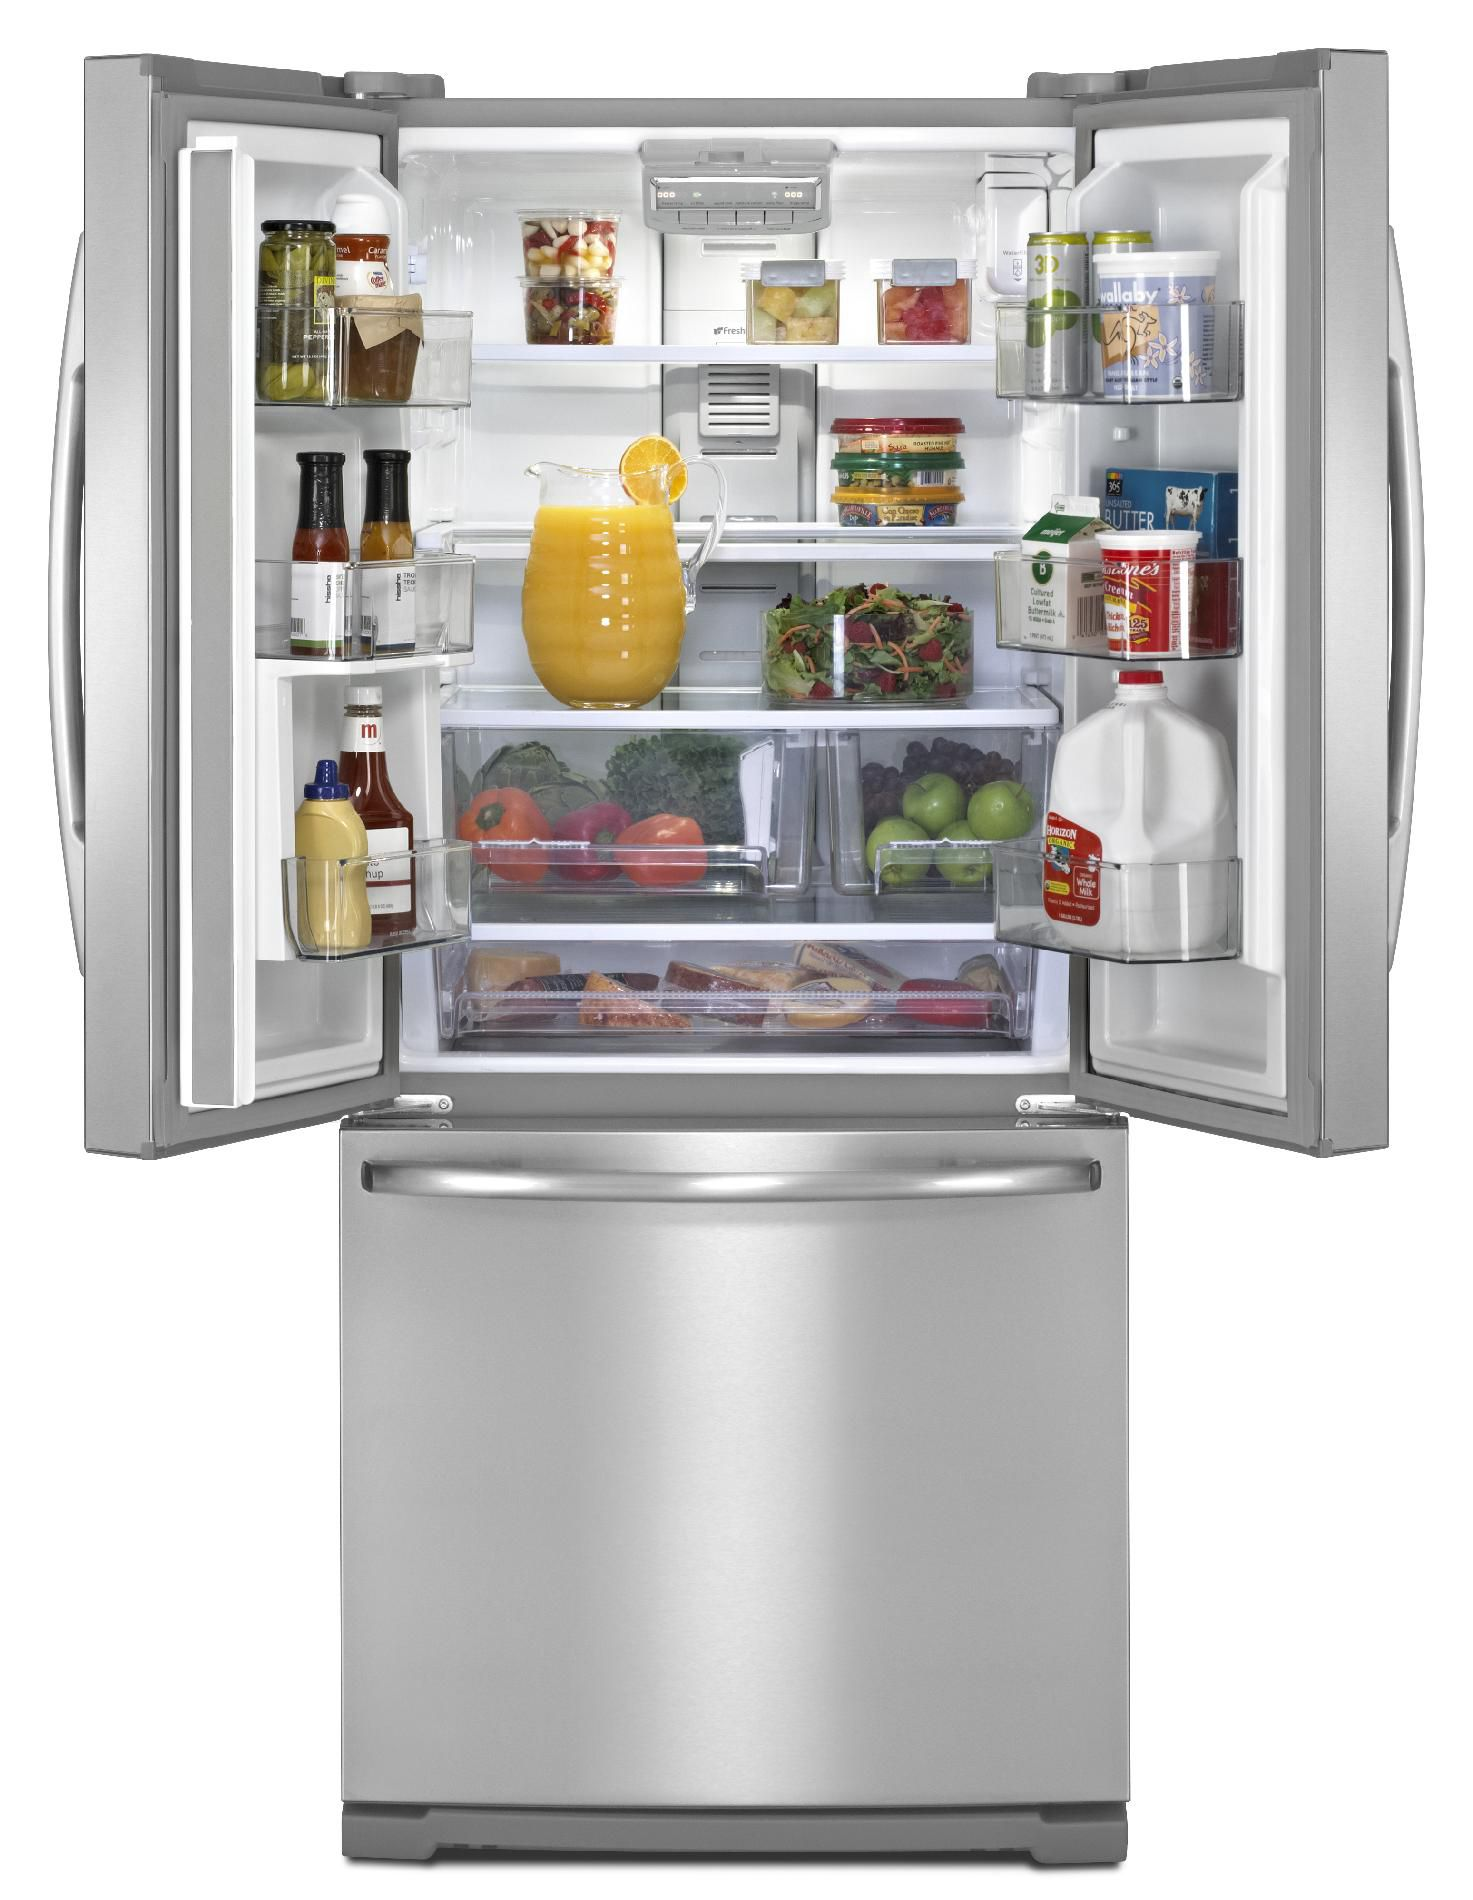 Maytag 20 cu. ft. French-Door Refrigerator w/ Strongbox™ Door Bins - Stainless Steel